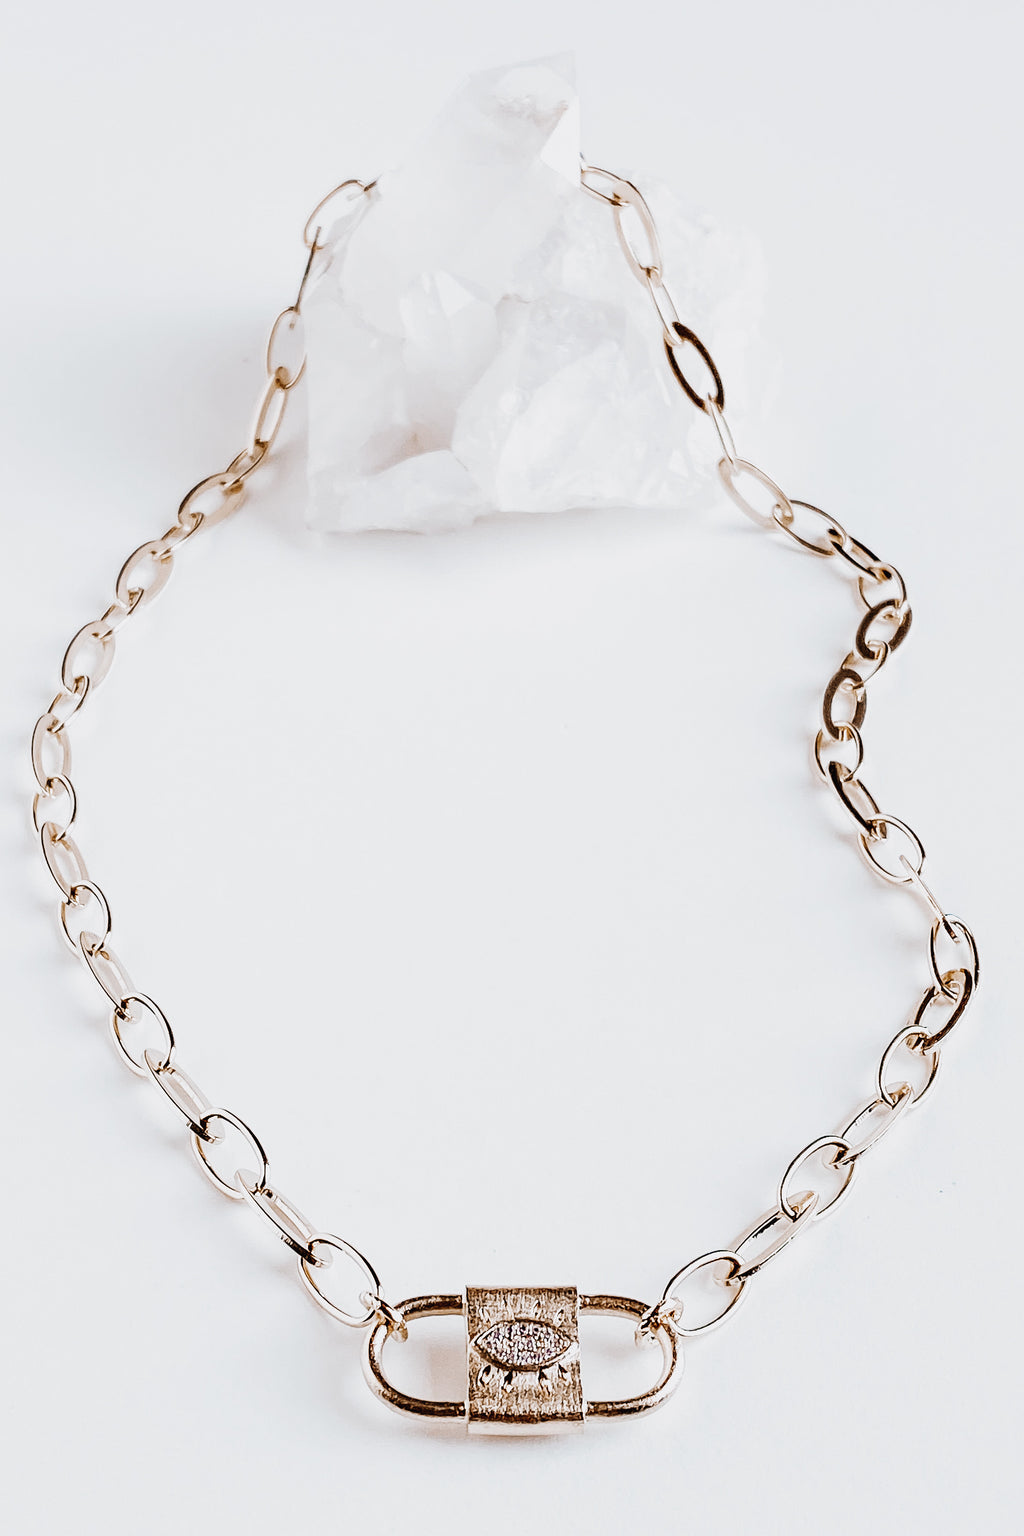 Protective Eye Chain Link Necklace